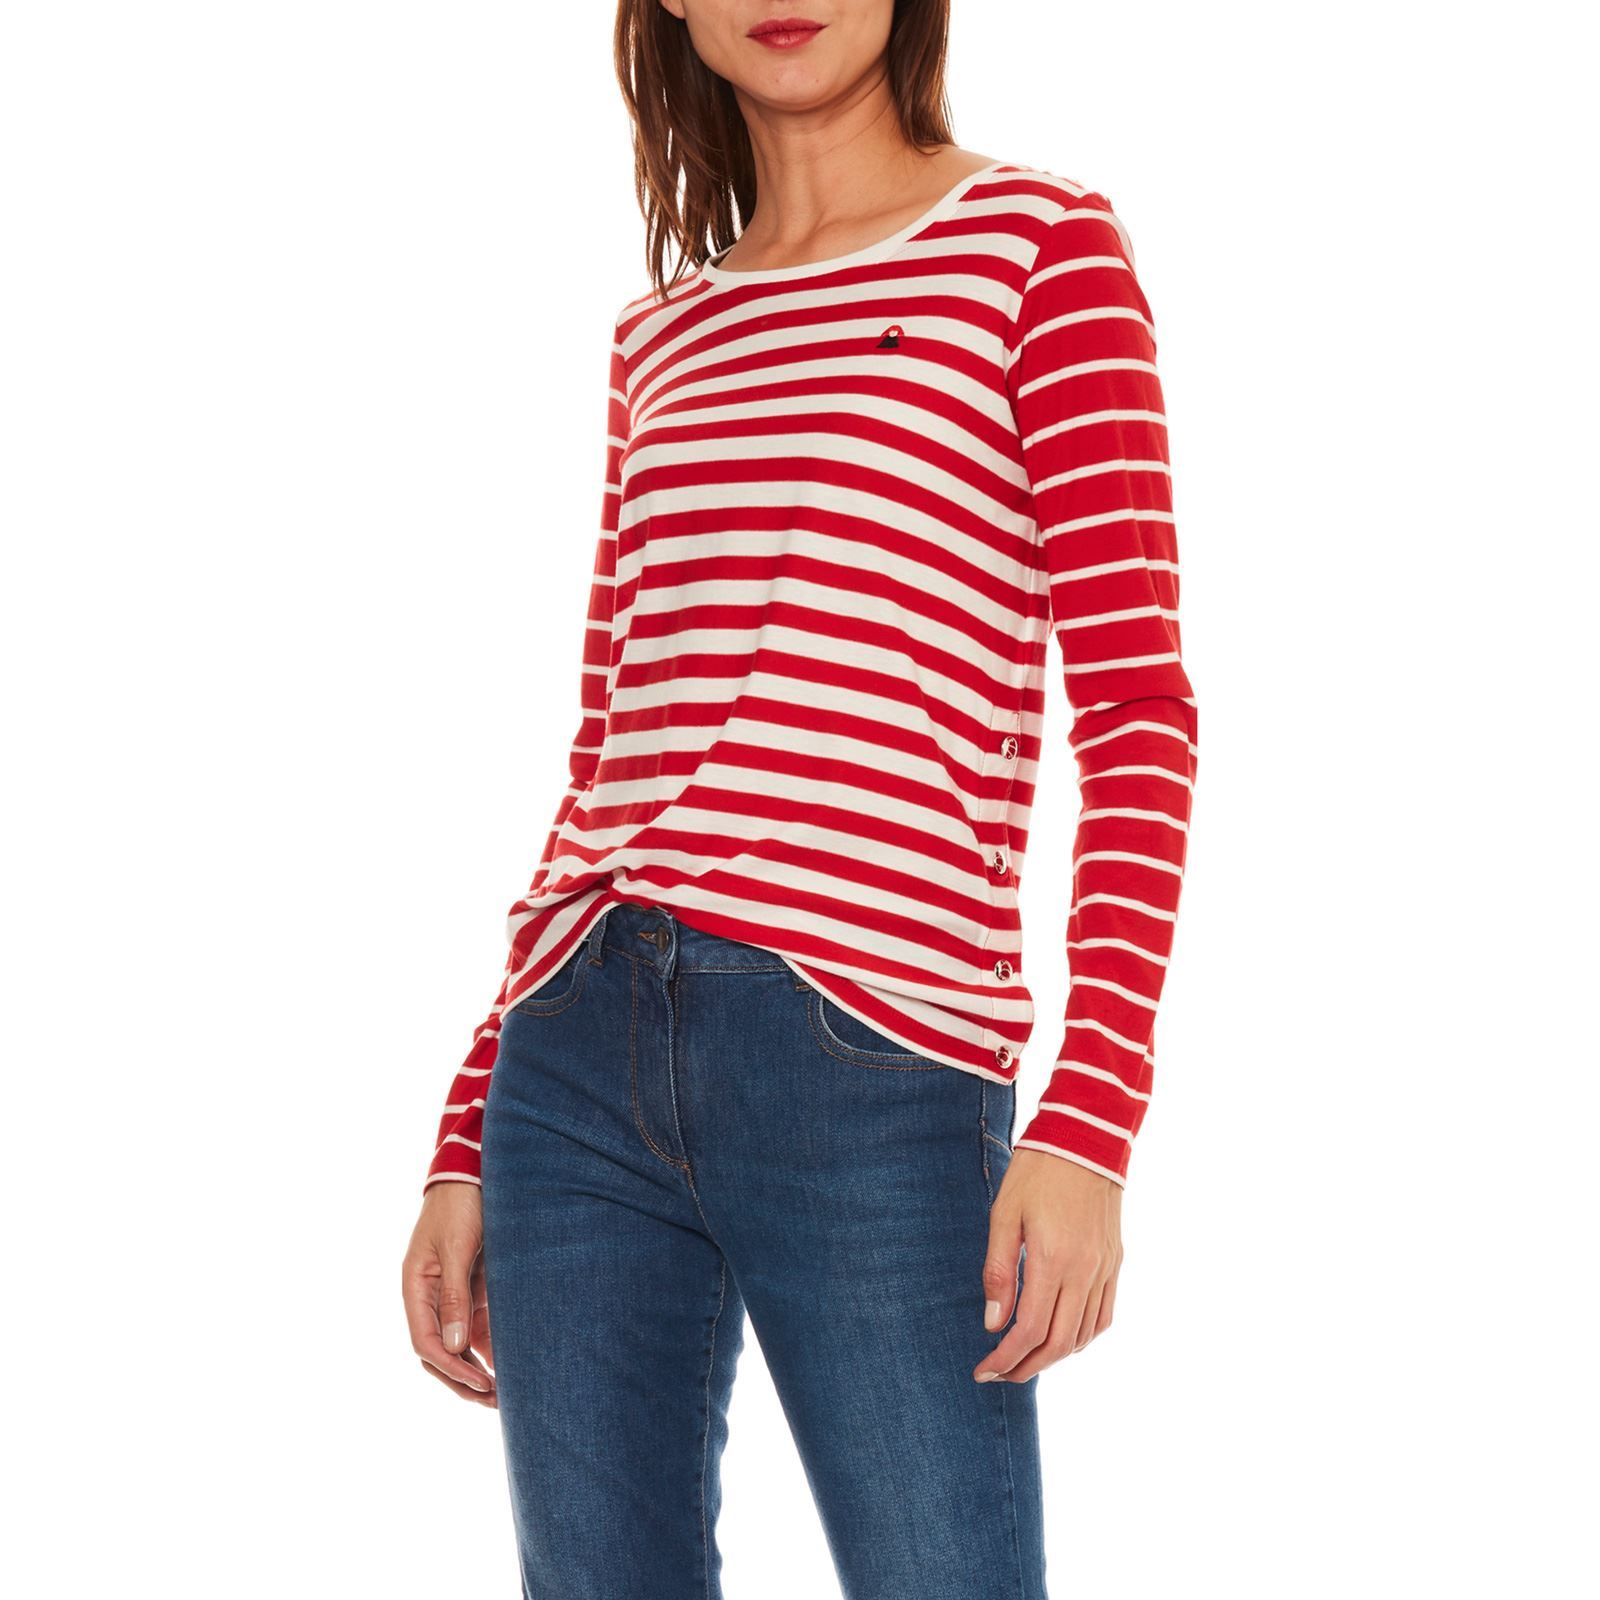 Sonia by Sonia Rykiel Langärmeliges T-Shirt - rot   BrandAlley b26be8940b